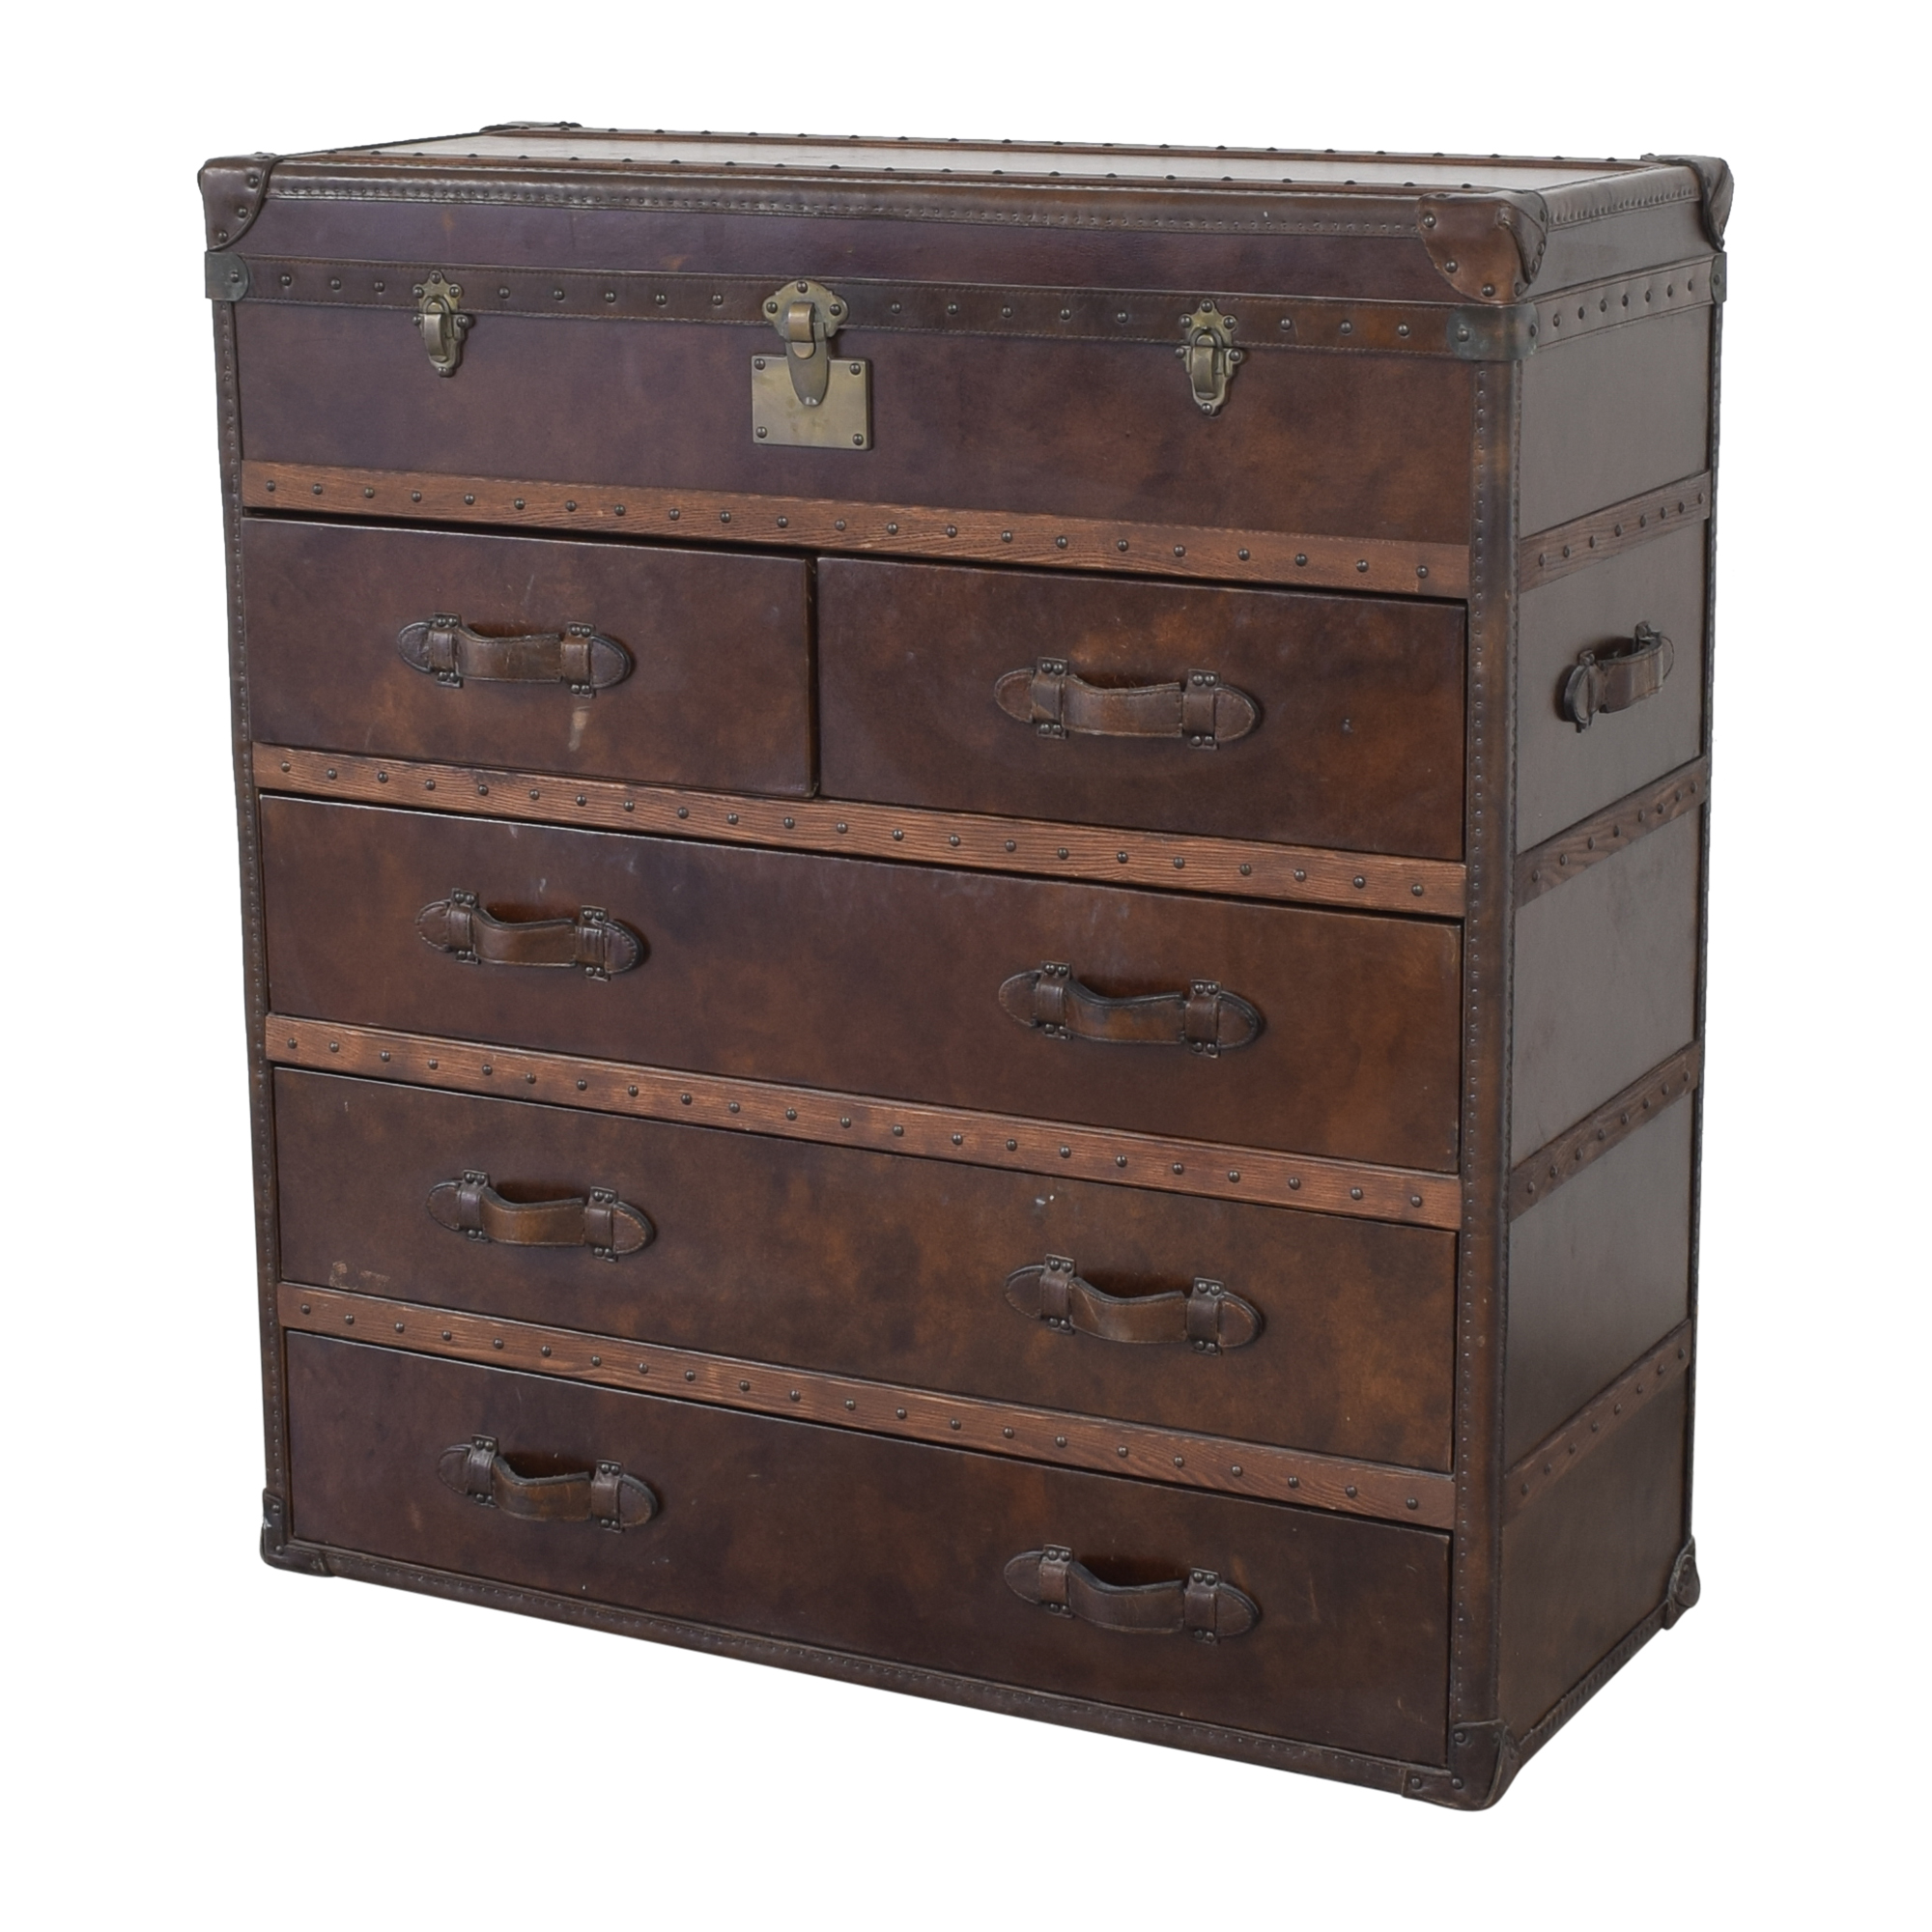 Restoration Hardware Restoration Hardware Mayfair Steamer Trunk Chest pa